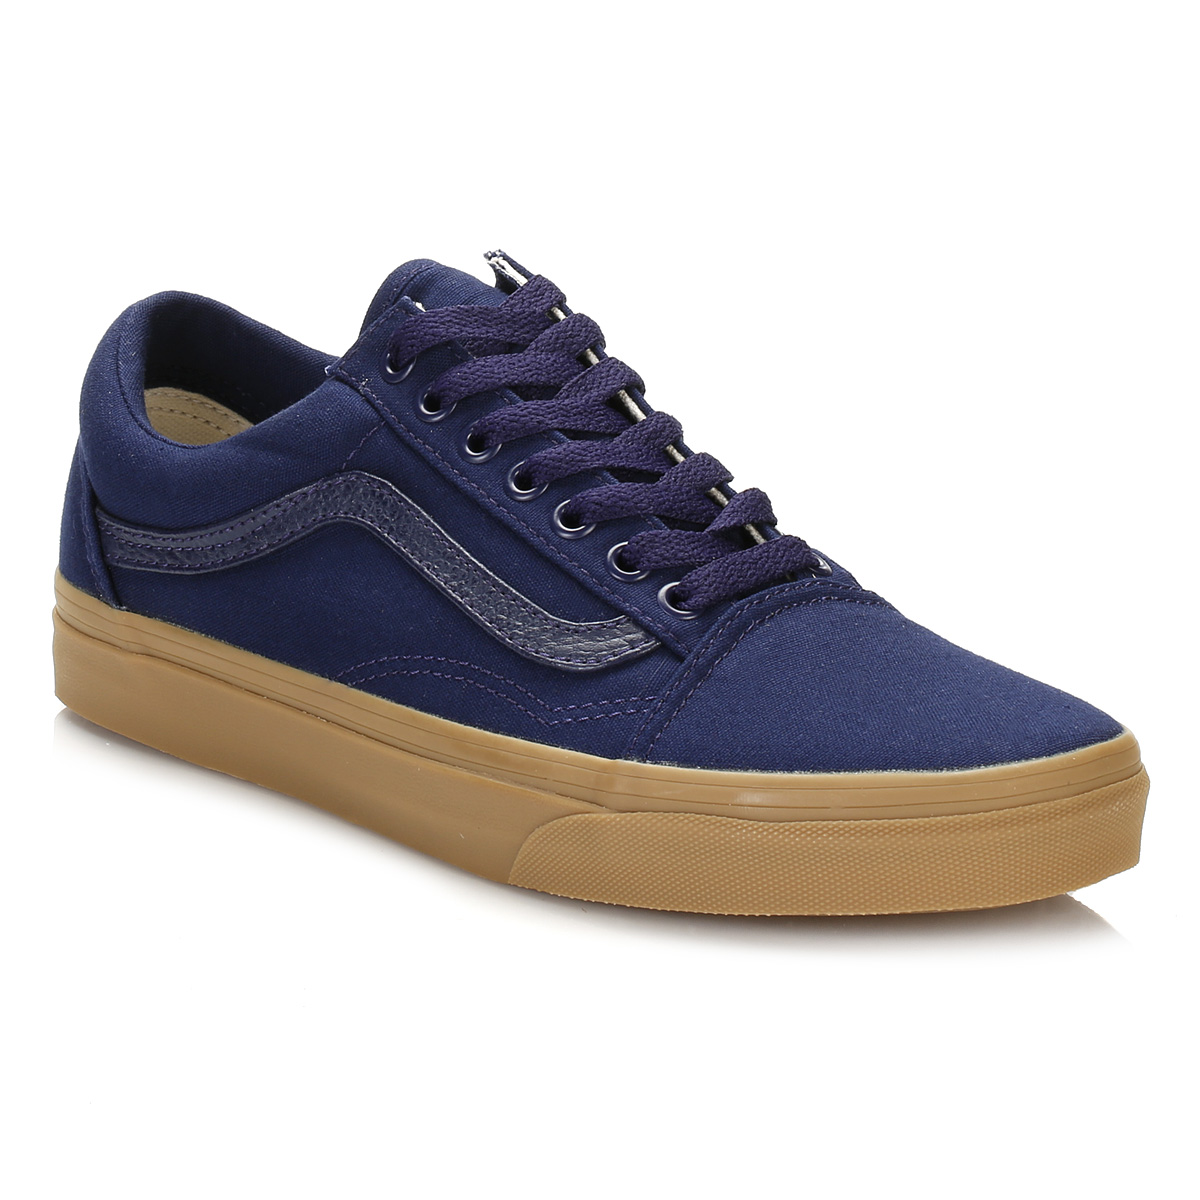 vans mens trainers green blue black light gum old skool. Black Bedroom Furniture Sets. Home Design Ideas